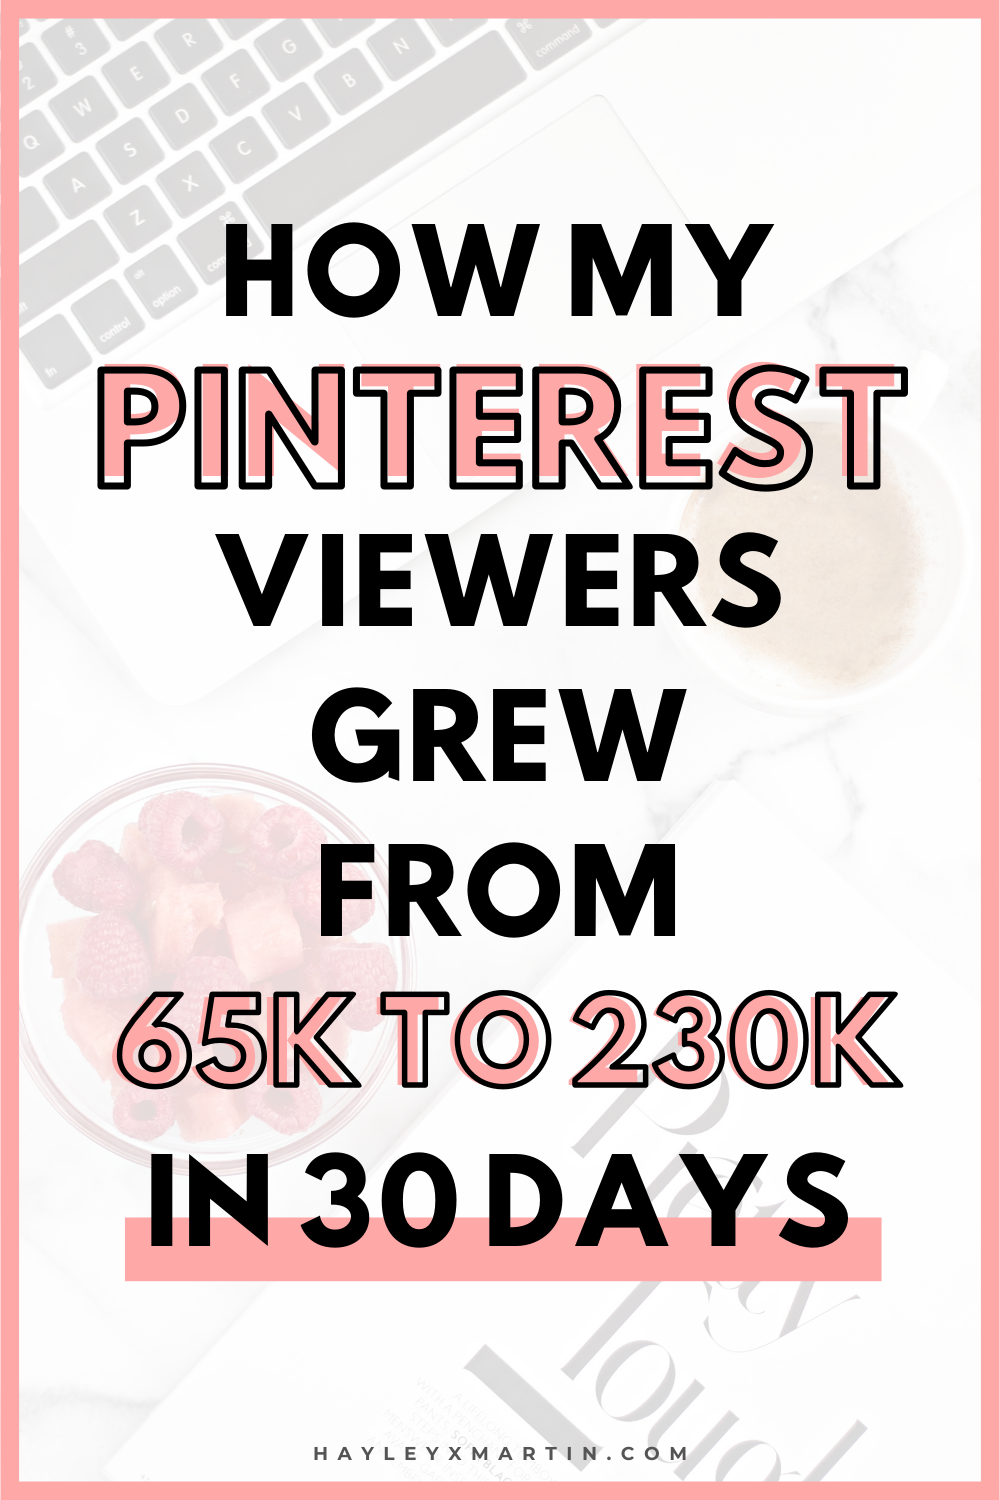 How my pinterest viewers grew from 65k to 230k in 30 days | hayleyxmartin